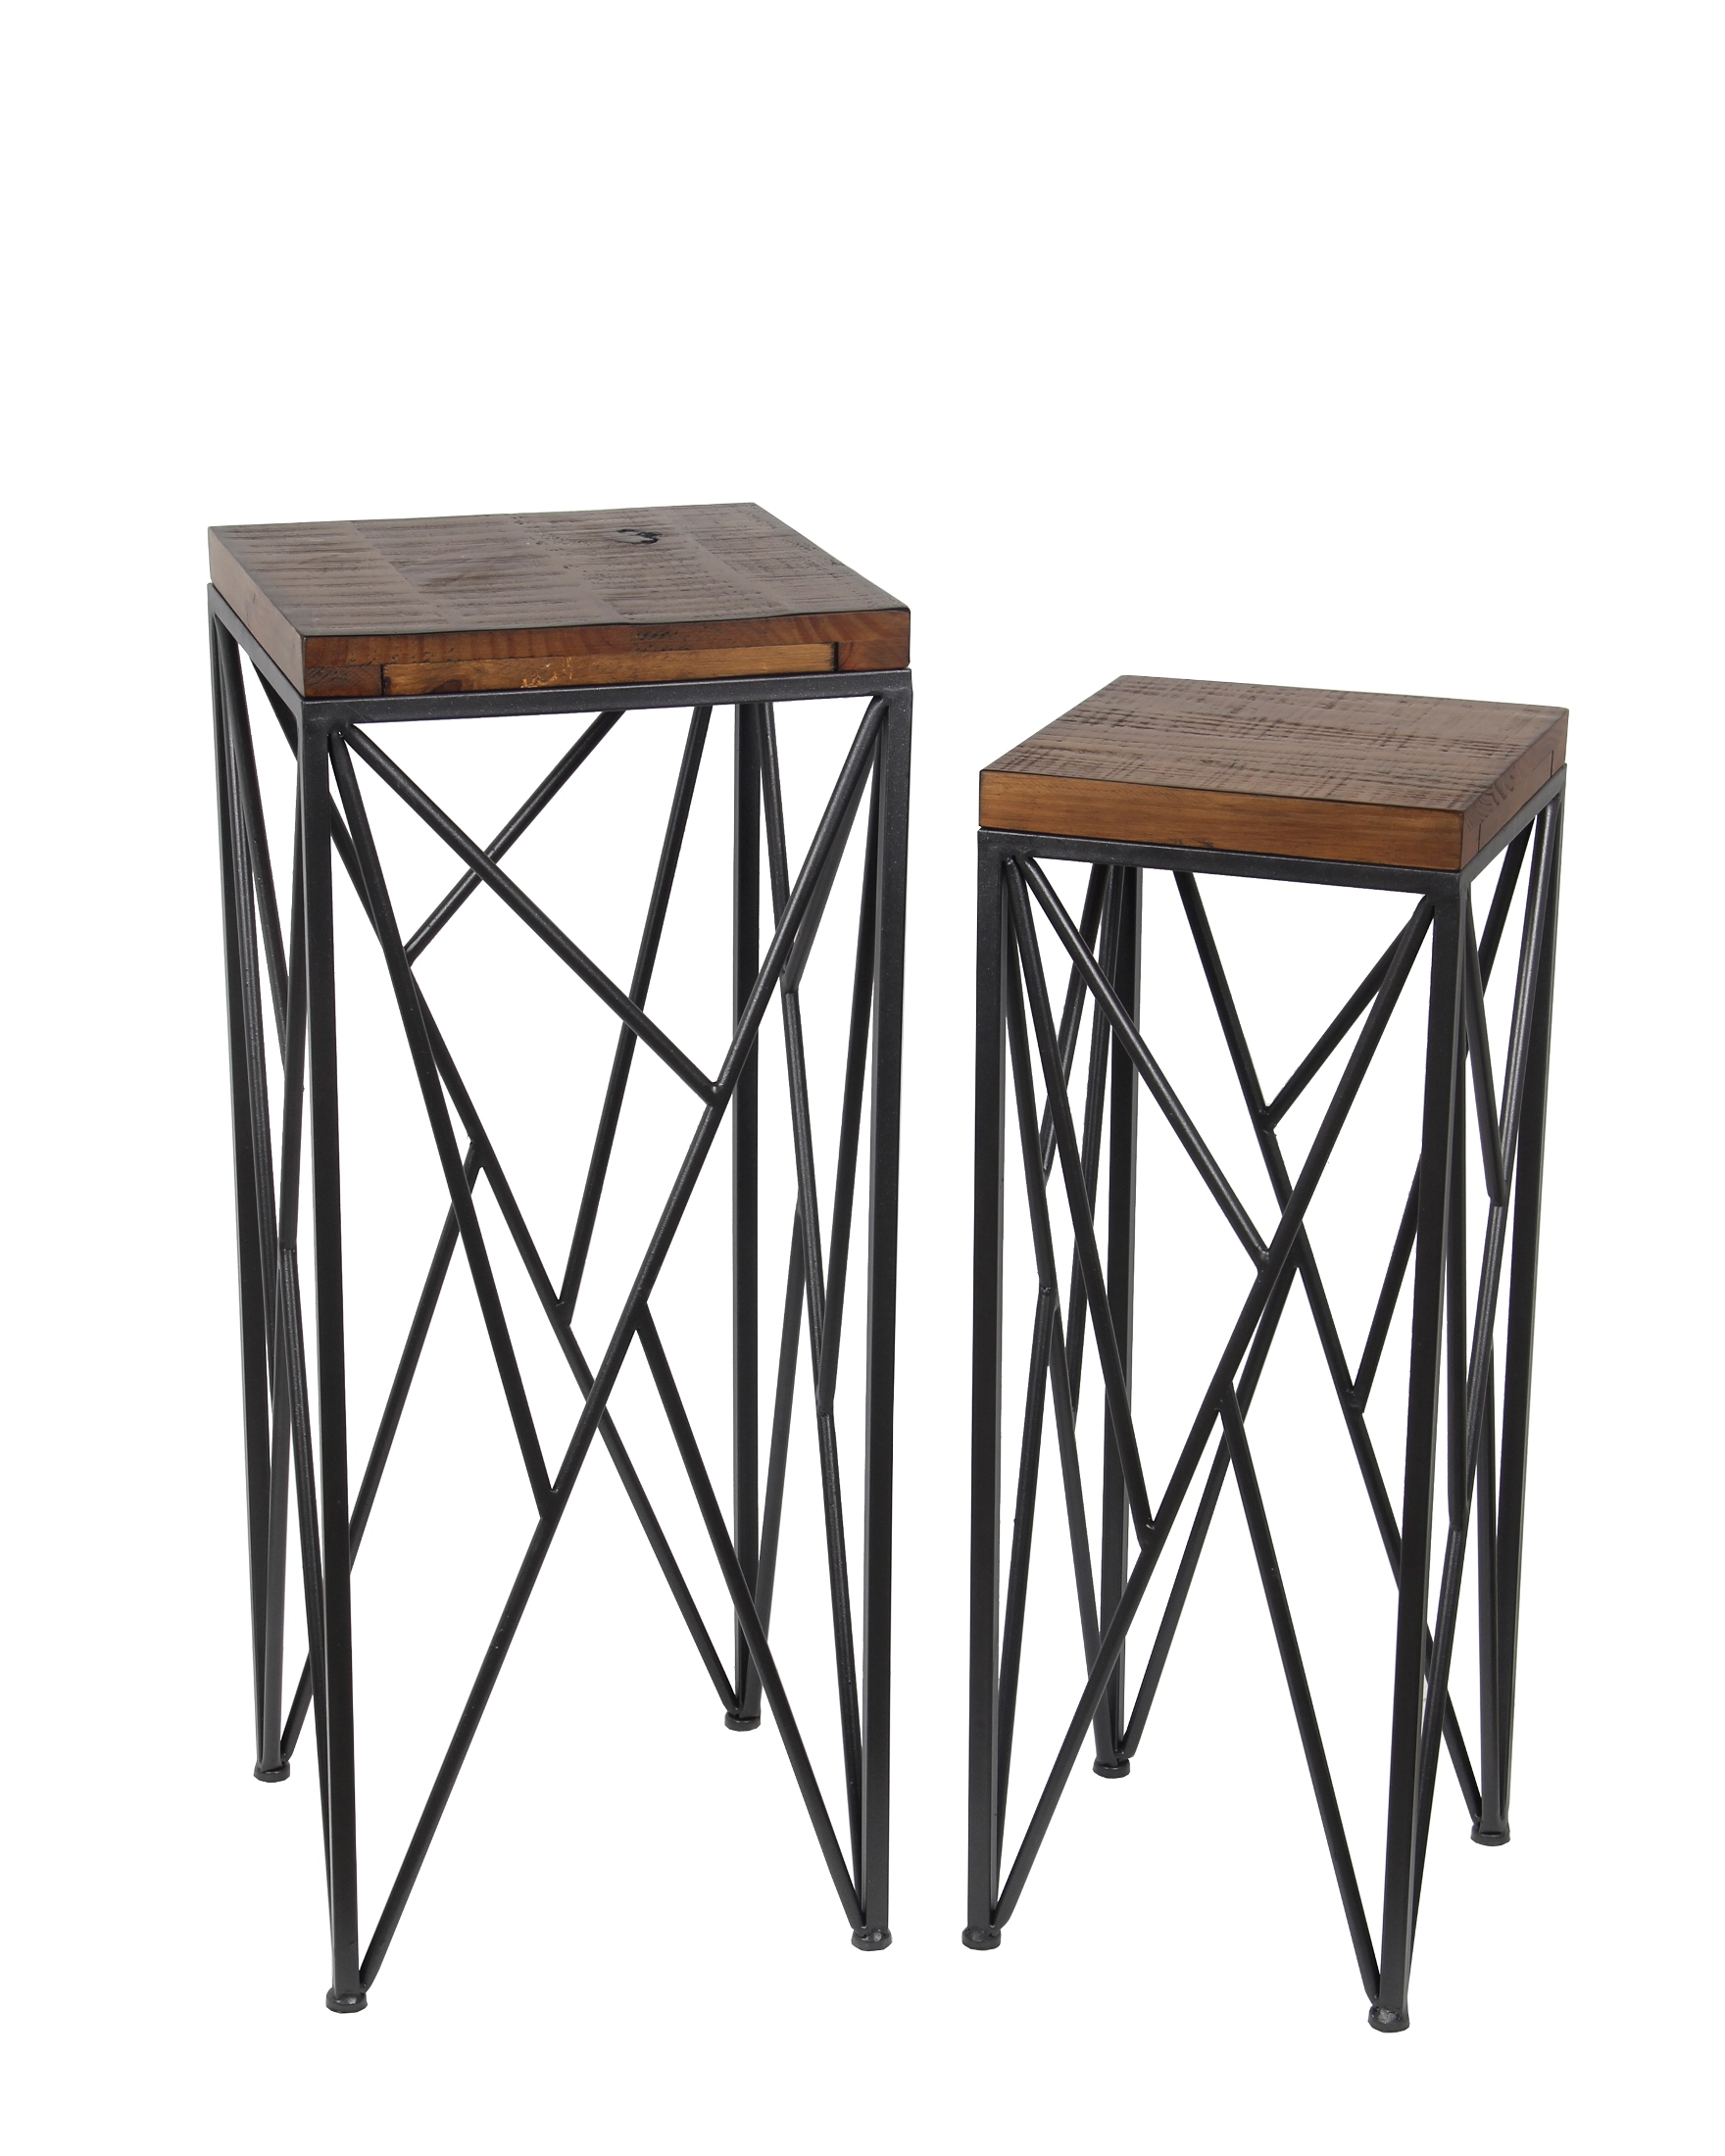 Wood And Metal Plant Stand Pair Of Nesting Medium Brown Wood And Metal Plant Stands